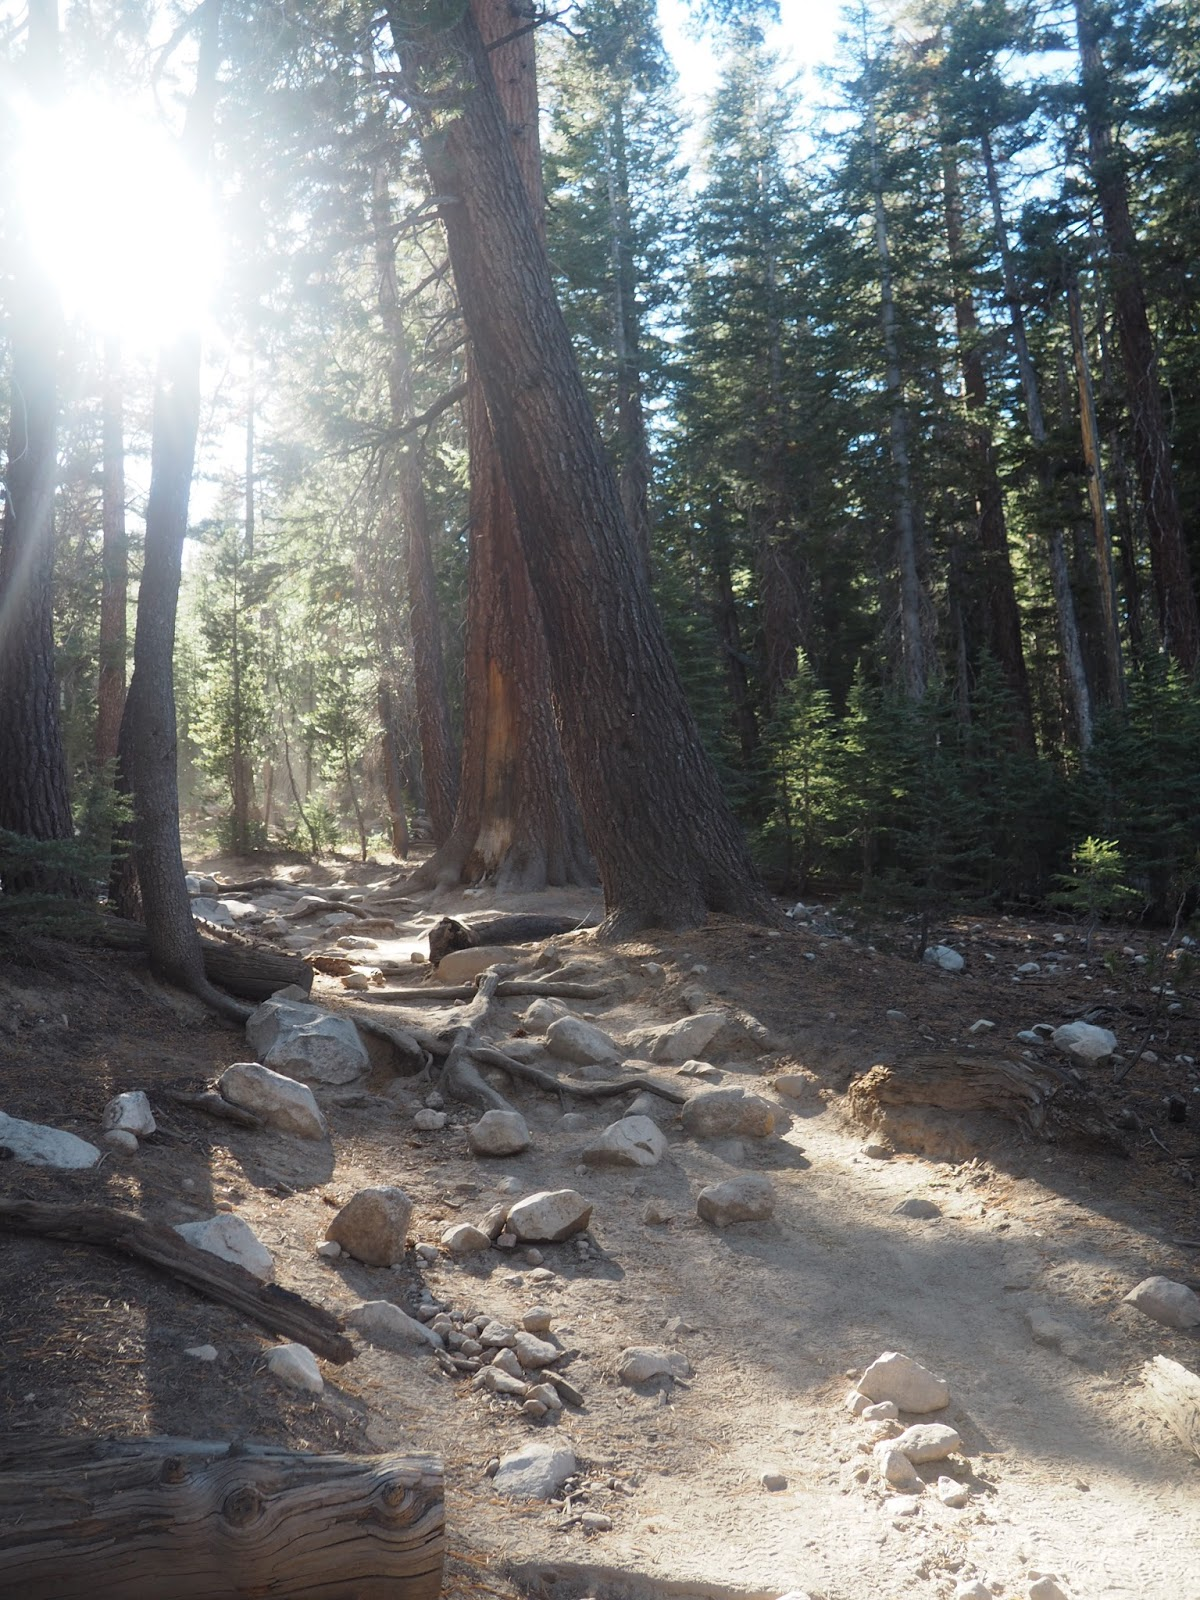 Forest in Yosemite National Park, California